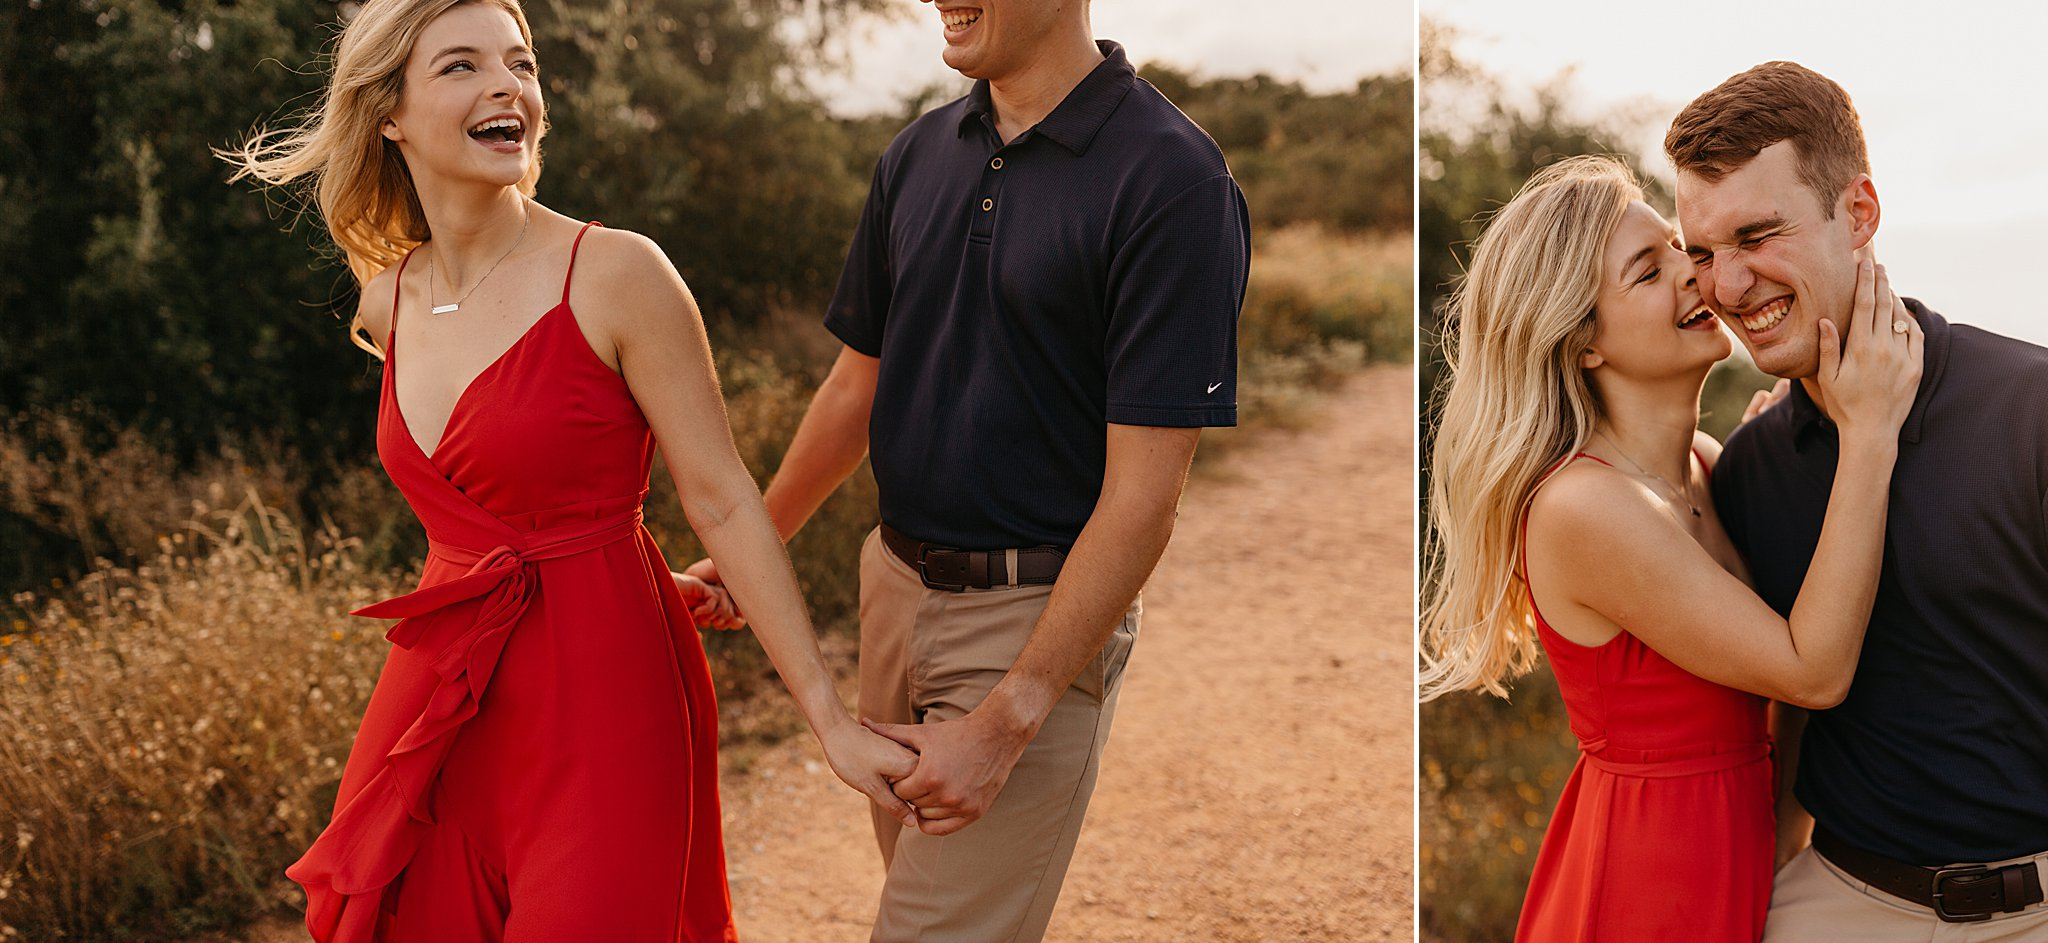 Wilderlove Co_Wedding Photographer_Dripping Springs Photography_Adventure Engagemenet_Rock Climbing Engagement_Hill Country Photographer_North Texas Photographer_0013.jpg